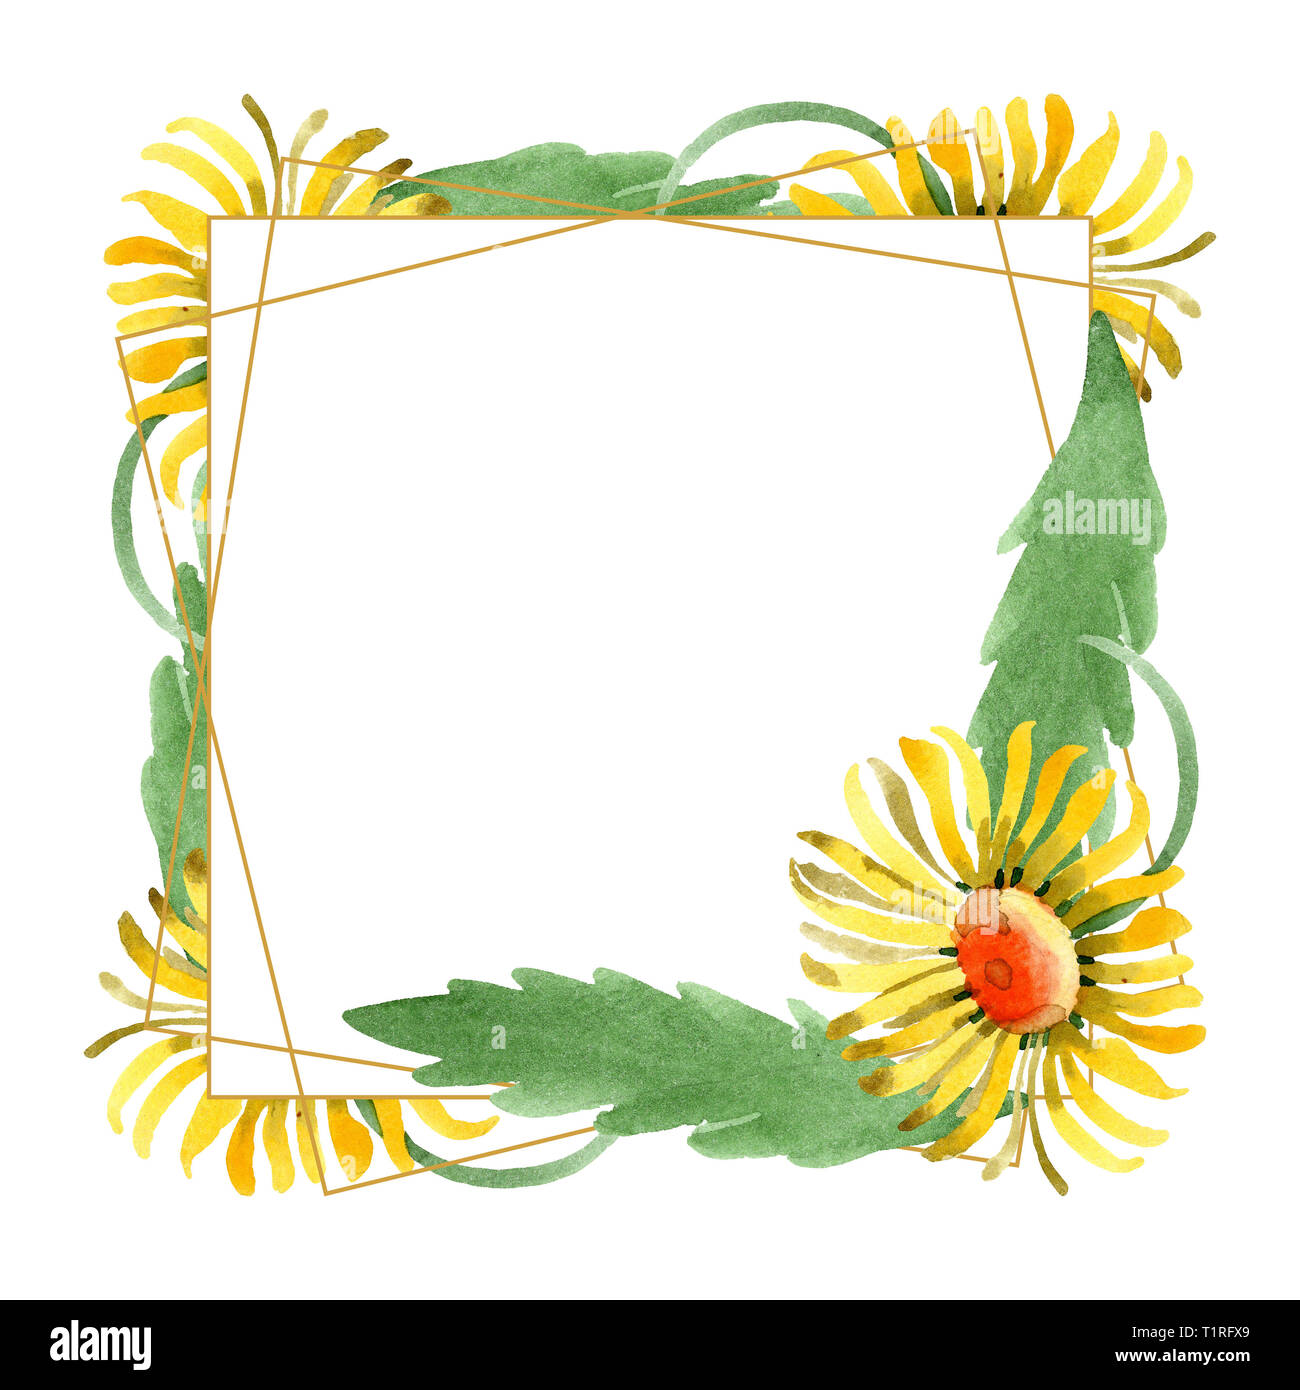 yellow daisy floral botanical flowers watercolor background illustration set frame border crystal ornament square stock photo alamy https www alamy com yellow daisy floral botanical flowers watercolor background illustration set frame border crystal ornament square image242077201 html